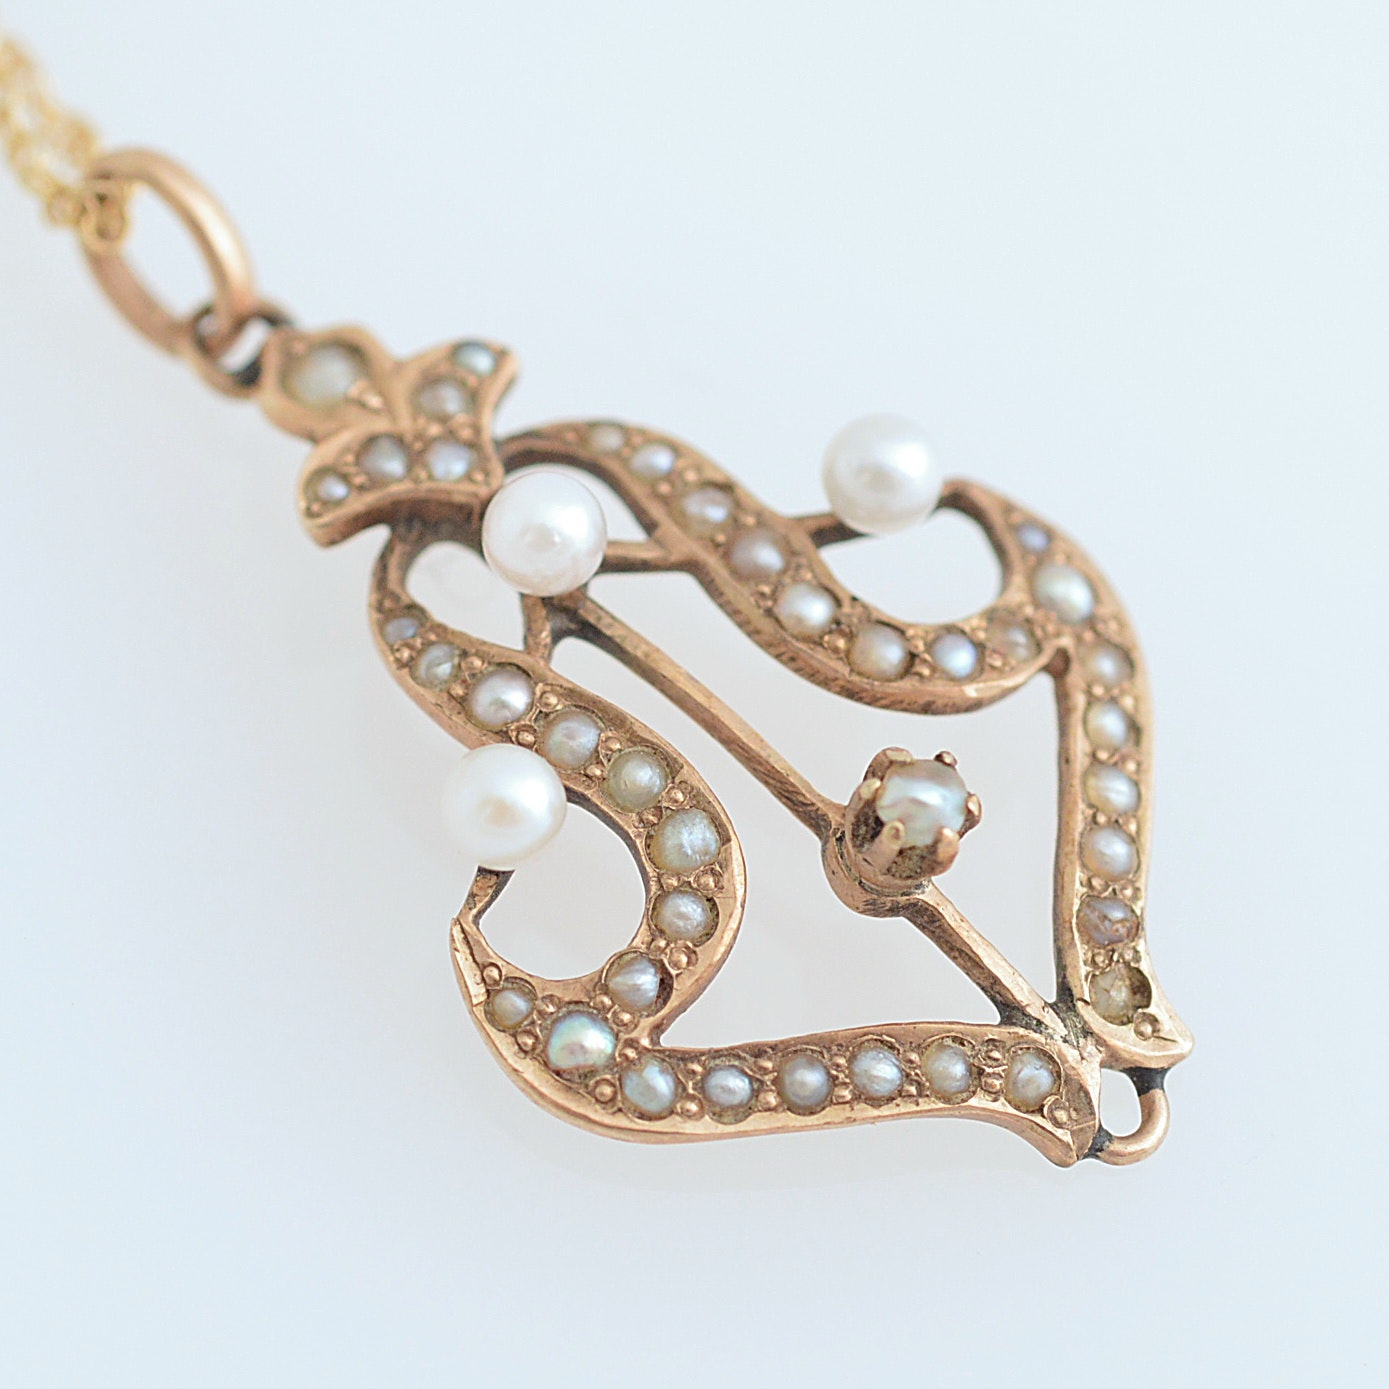 Antique 10K Yellow Gold and Seed Pearl Pendant with 14K Yellow Gold Chain